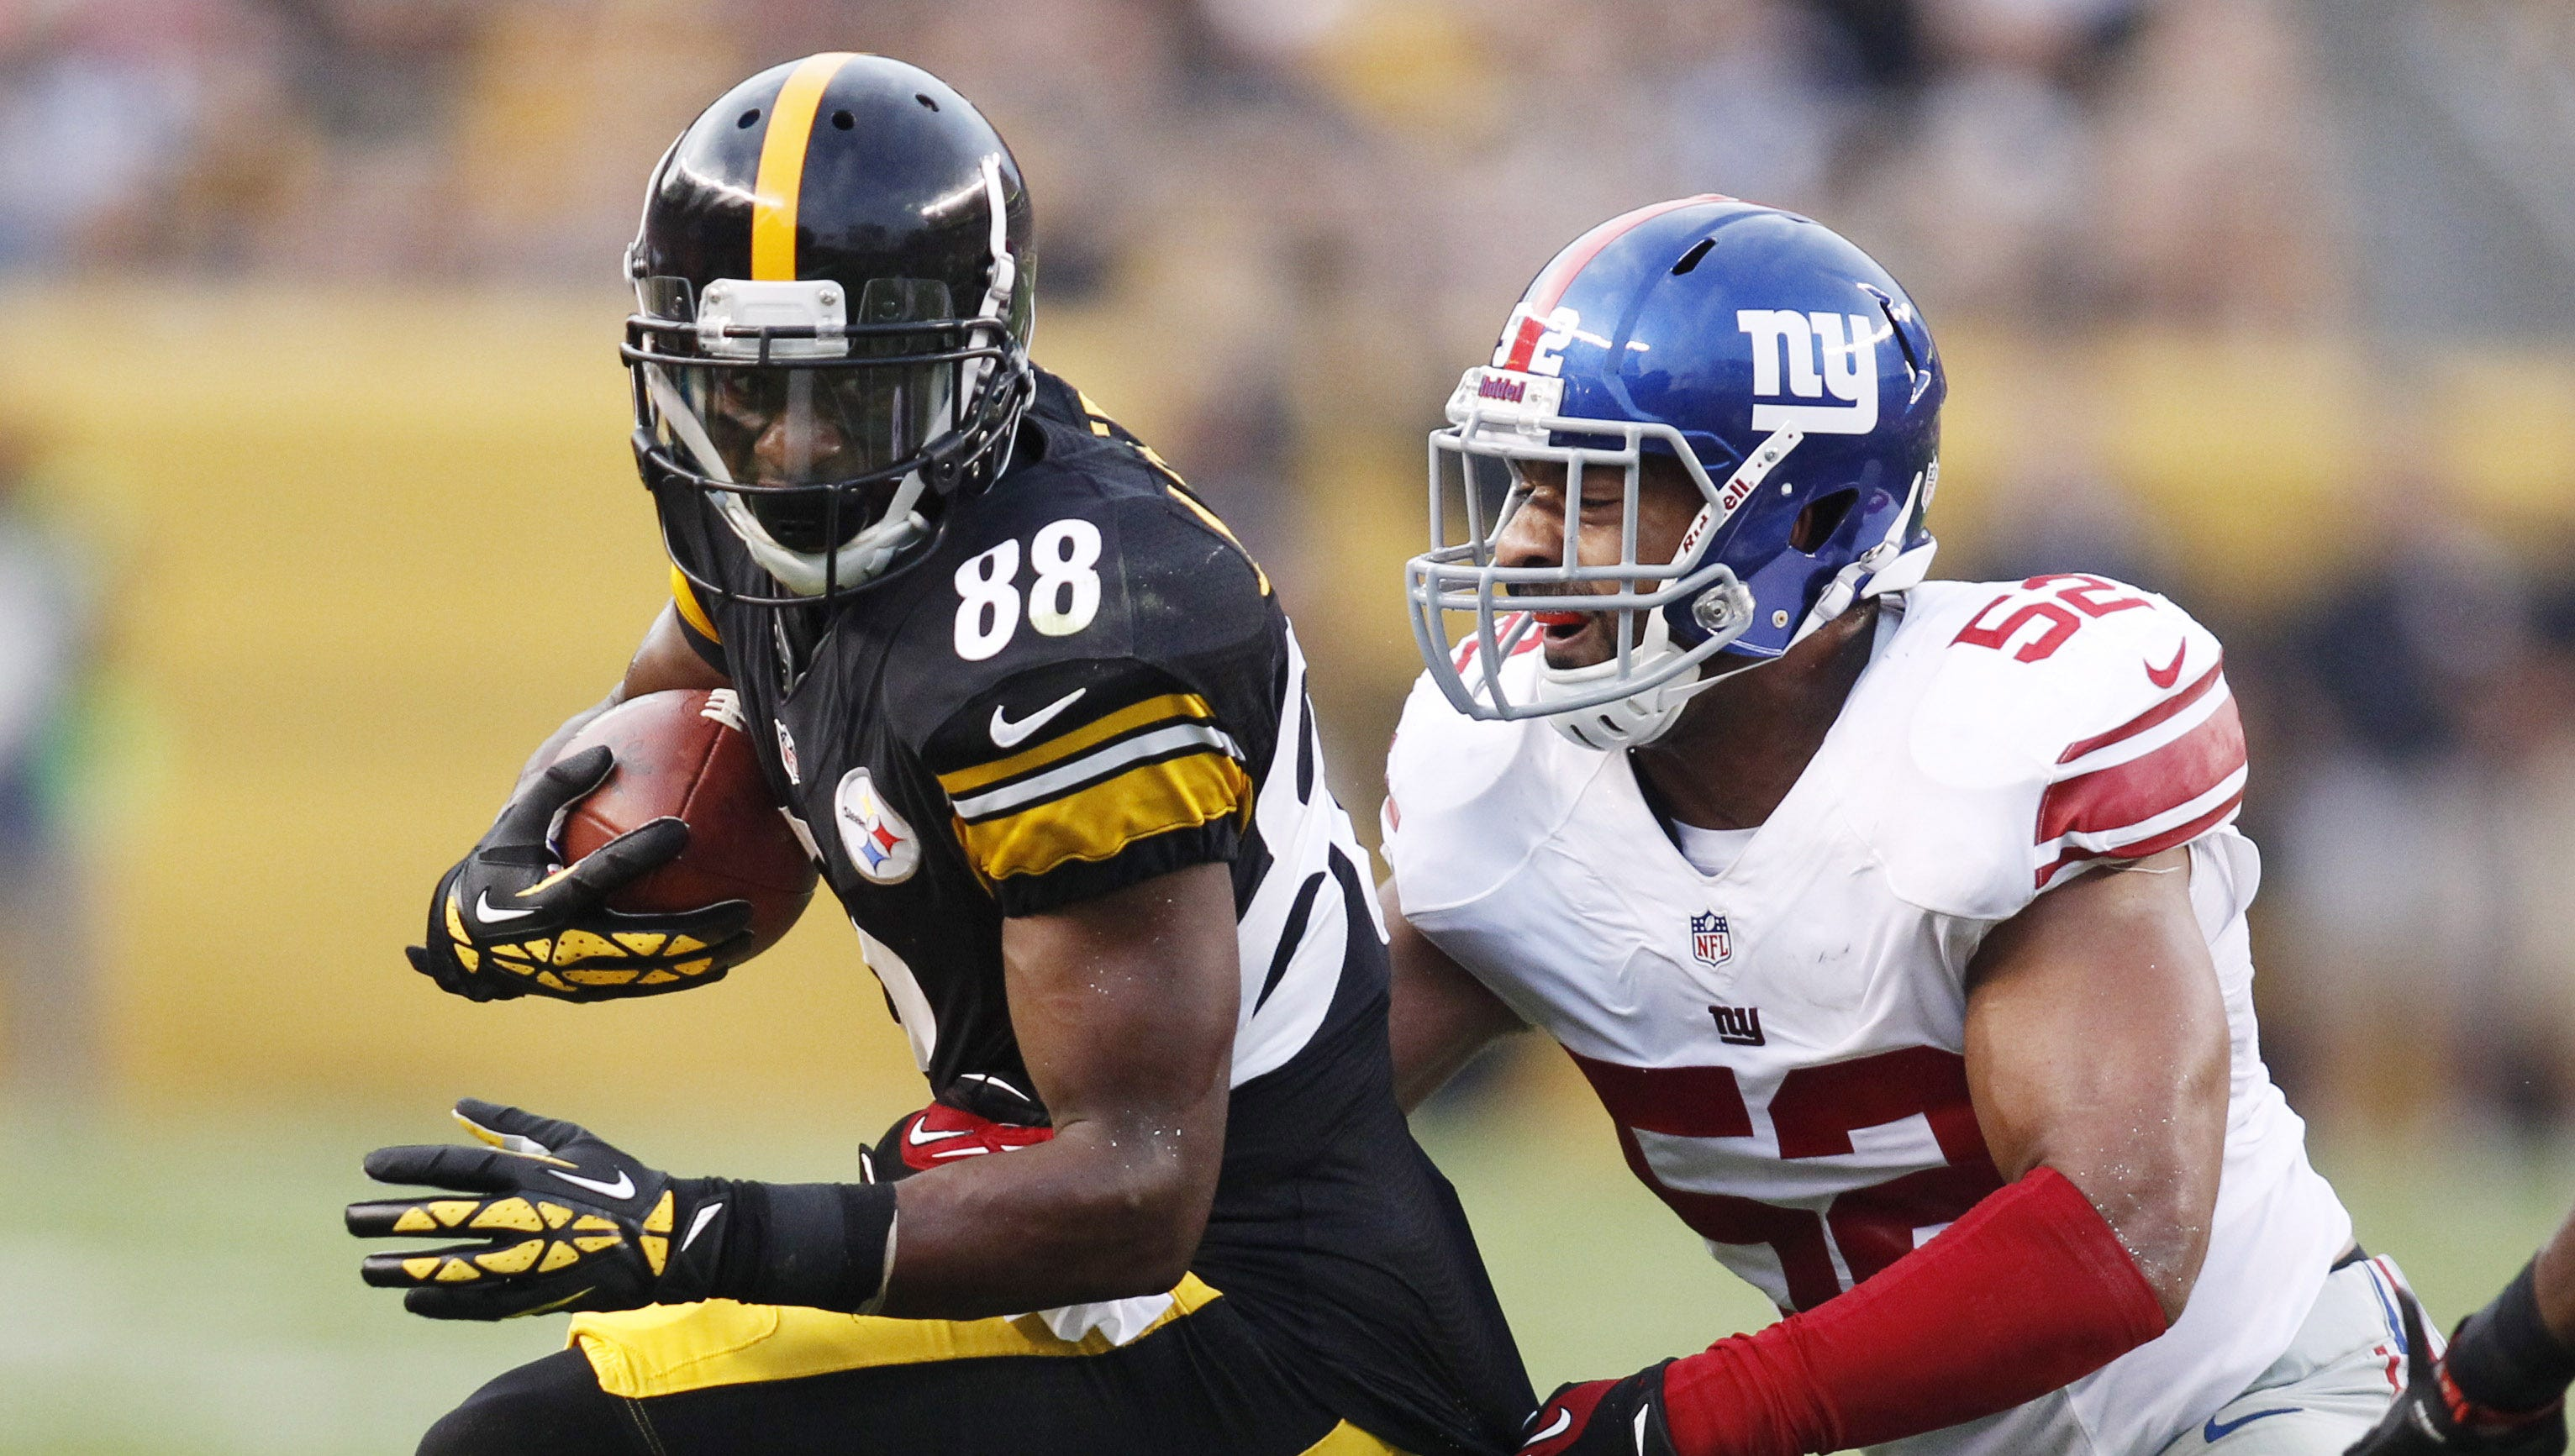 Pittsburgh Steelers wide receiver Emmanuel Sanders (88) runs after a catch as New York Giants outside linebacker Spencer Paysinger (52) defends during the first quarter at Heinz Field.